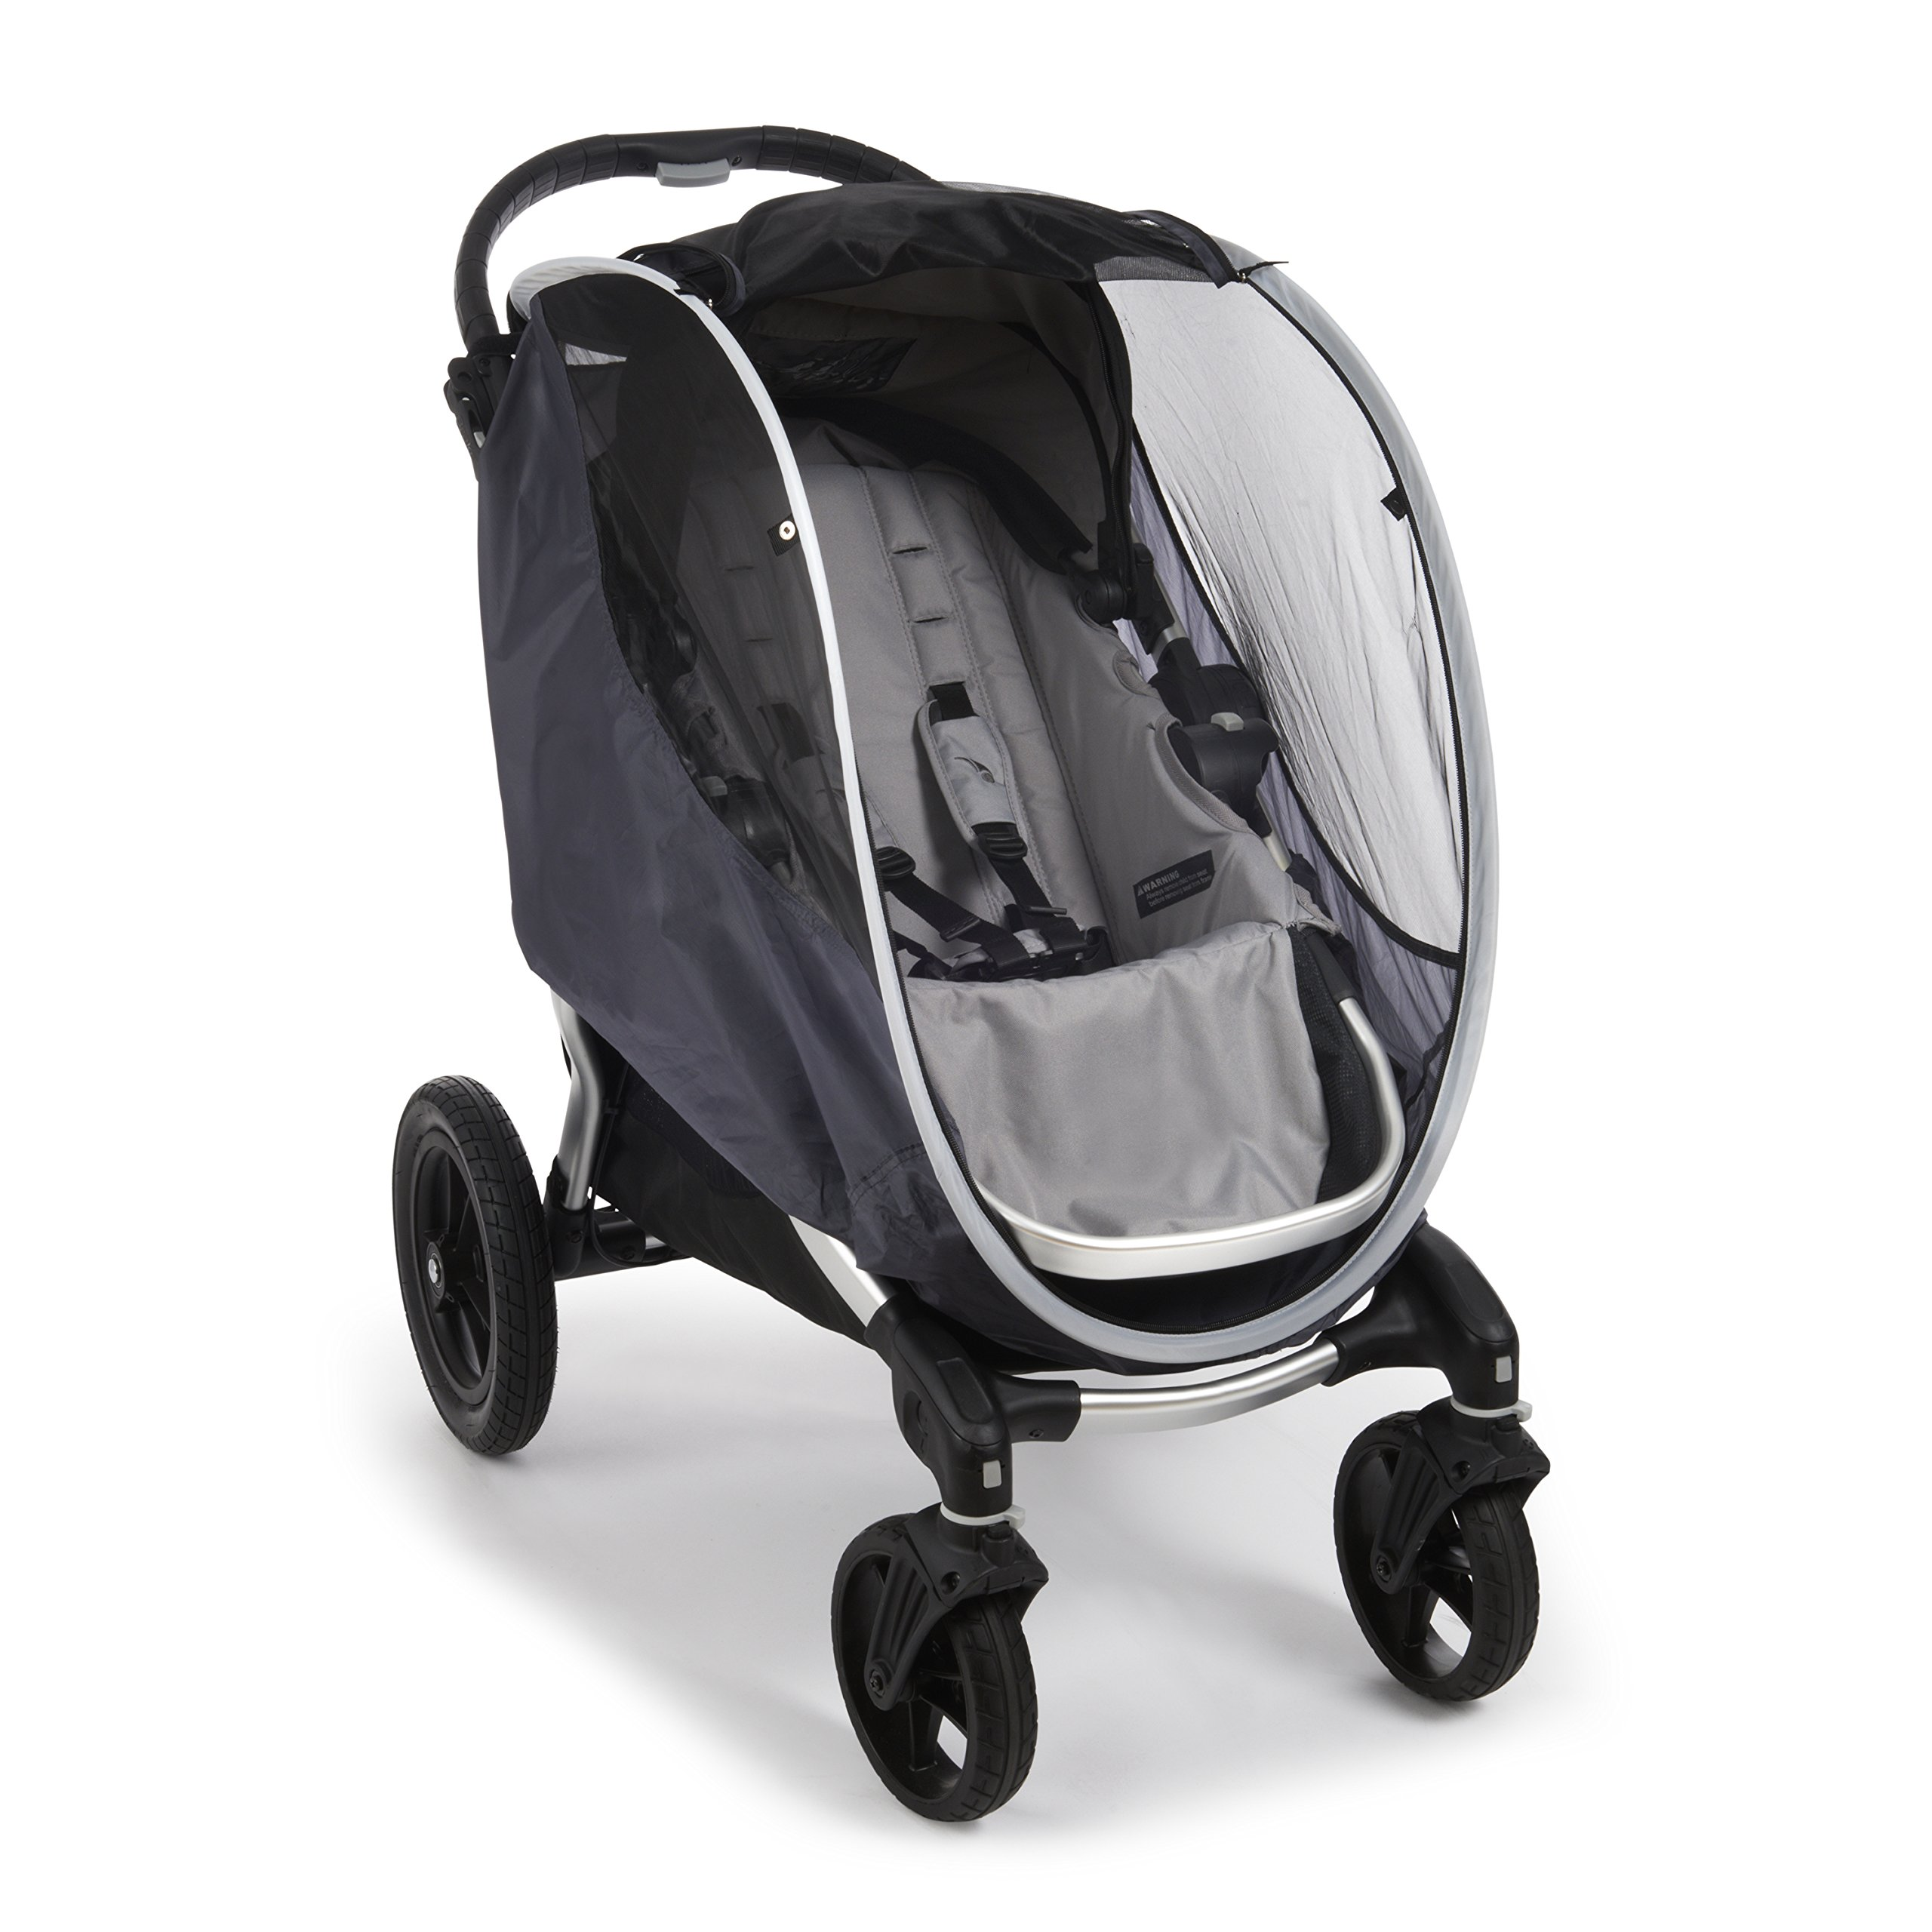 Munchkin Brica Shield Stroller Cover, Helps Block UVA/UVB Rays, Grey by Munchkin (Image #3)